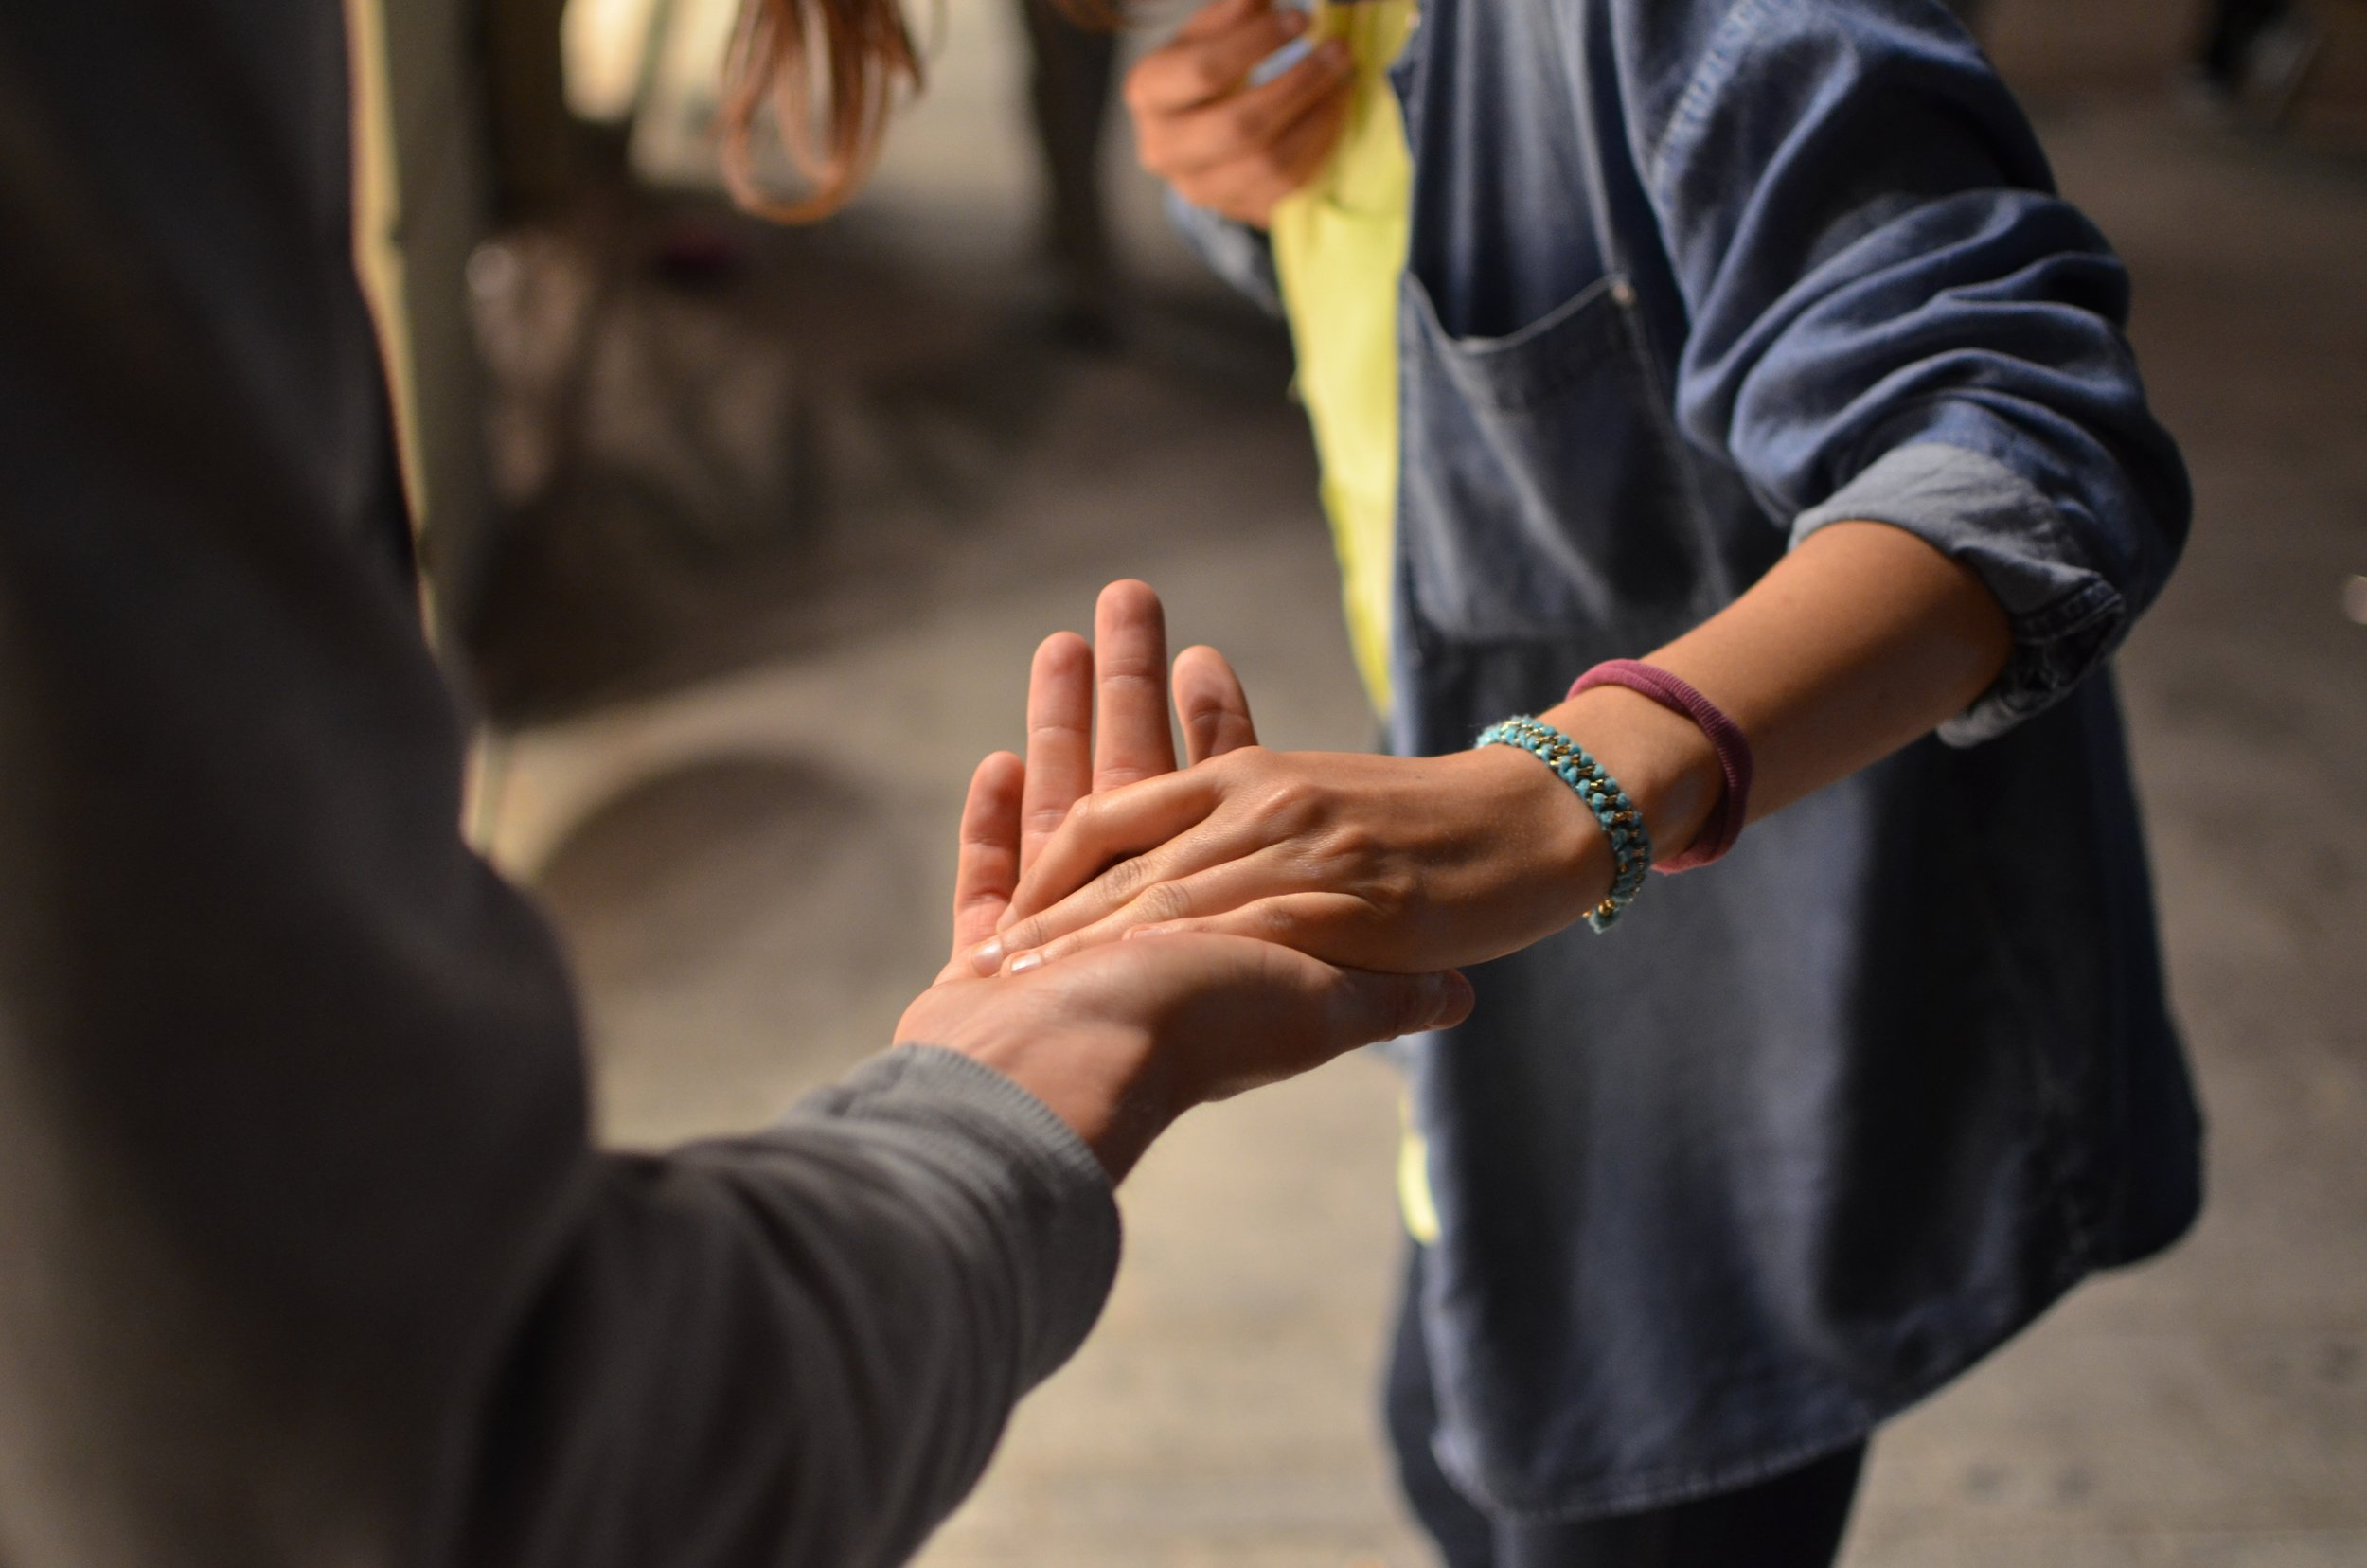 Boerne-Counselor-Finding-Compassion.jpg